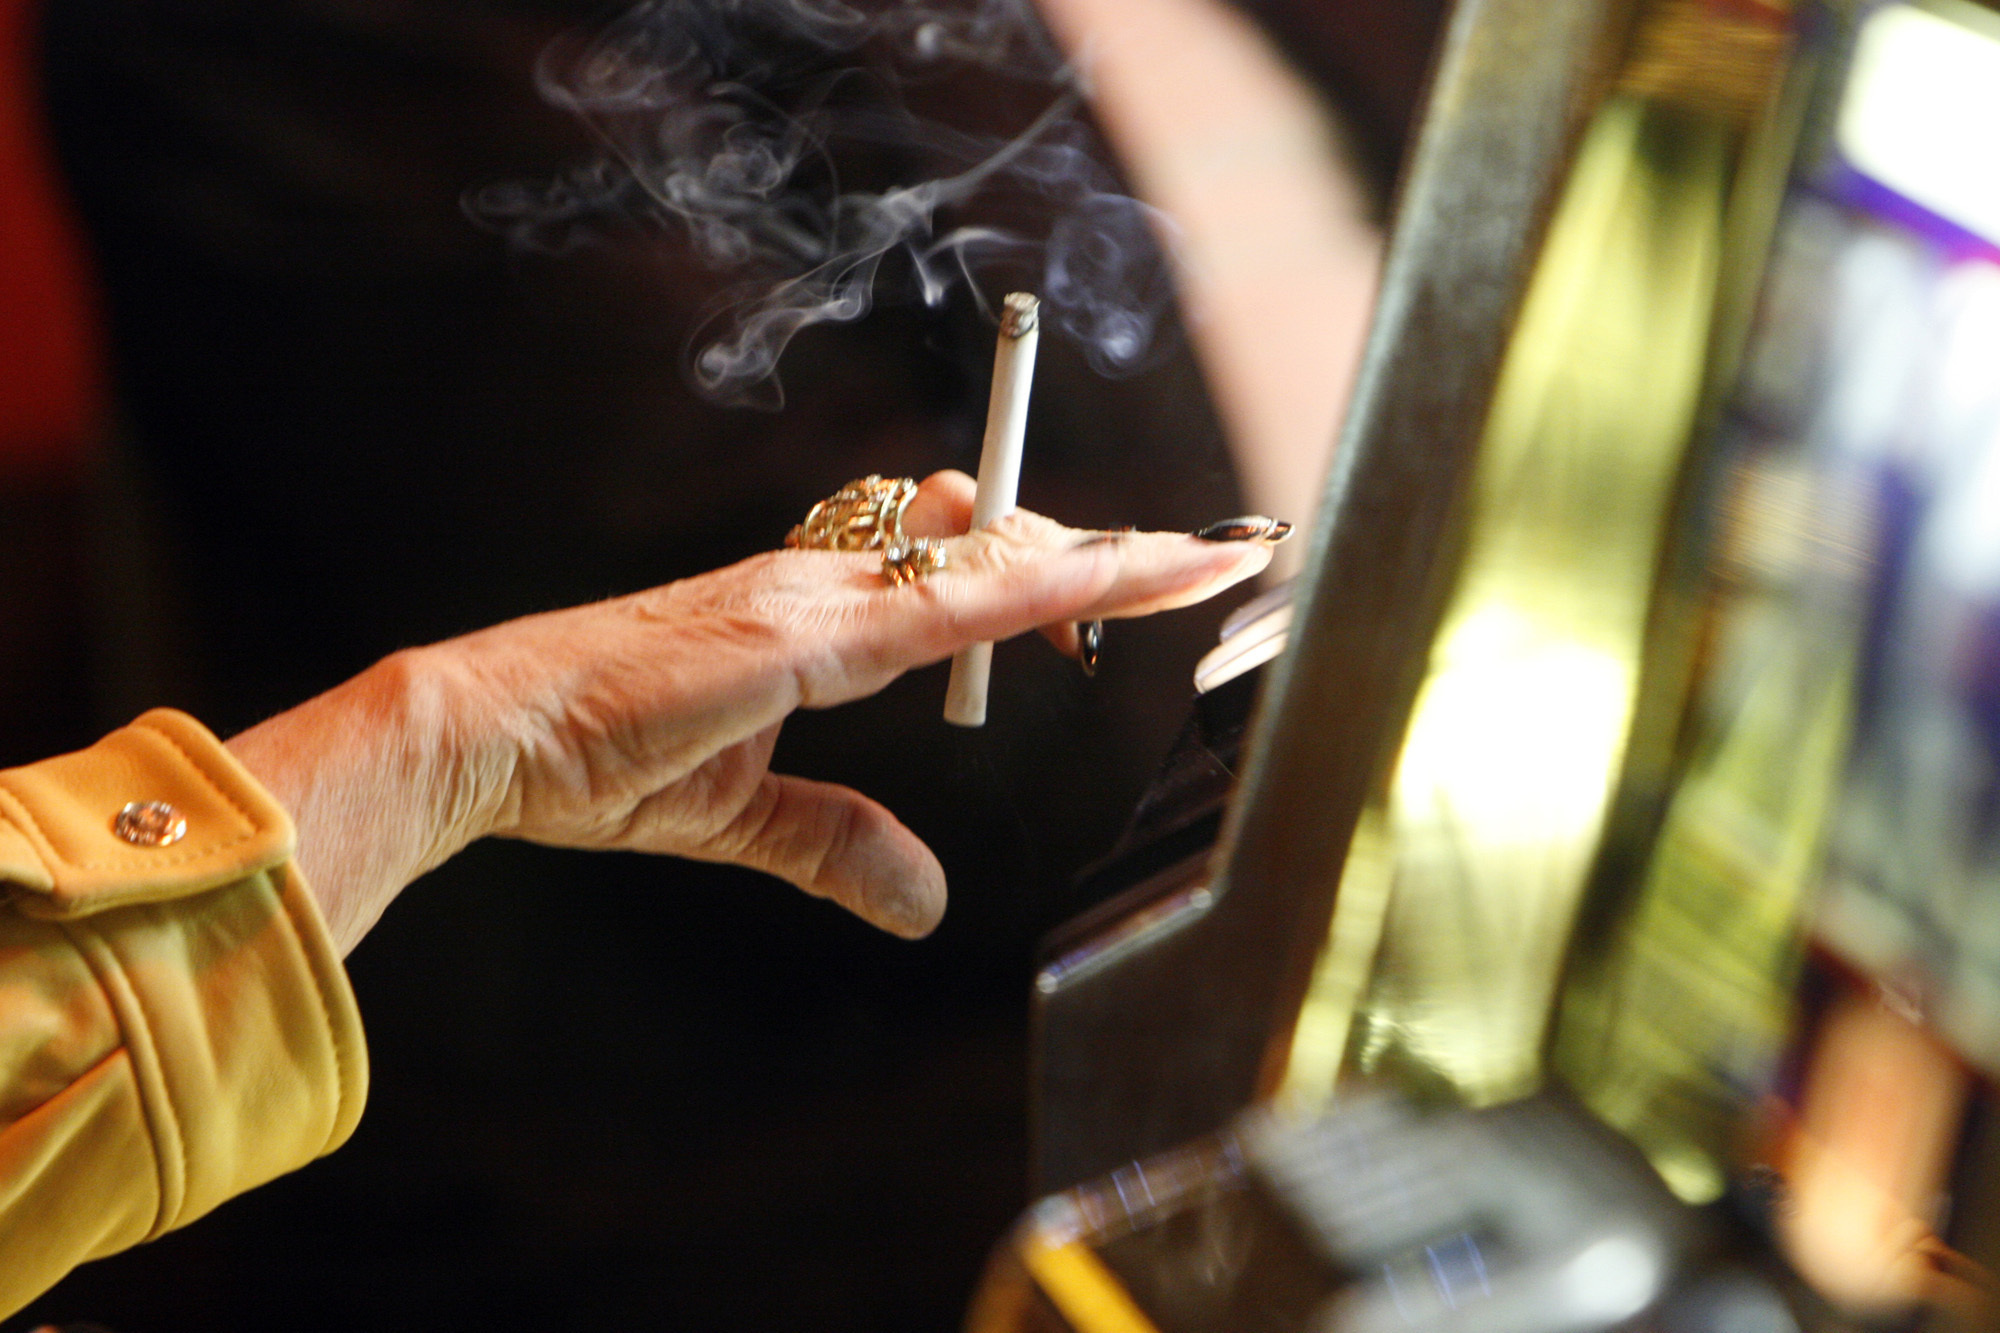 A woman holds a cigarette in her hand as she plays a slot machine at the Trump Taj Mahal in Atlantic City, N.J., on April 8, 2008. (Cie Stroud / Associated Press)